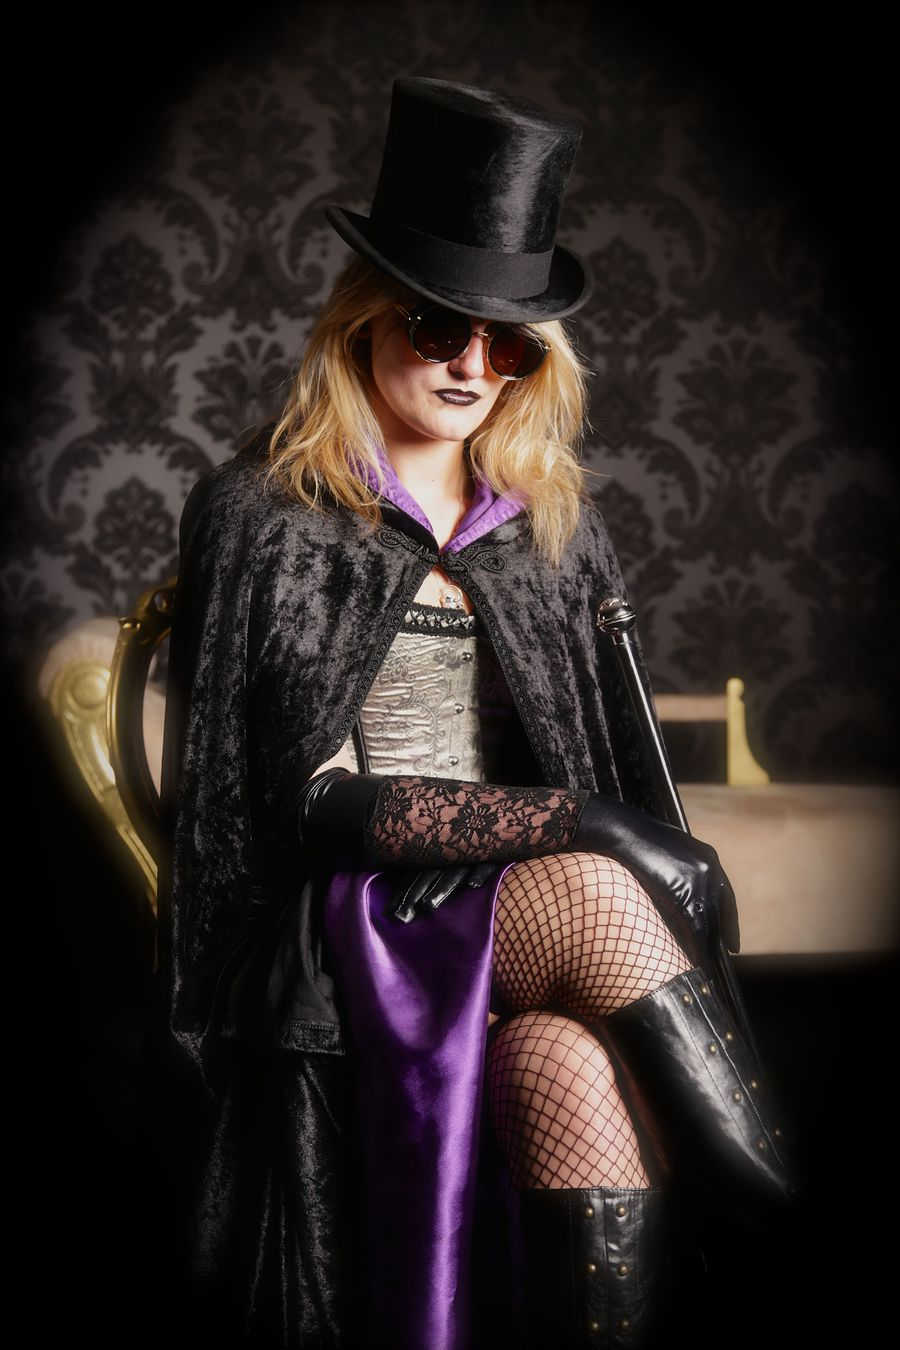 ripper / Photography by Curiosity Photography Studio & Prop Hire, Taken at Curiosity Photography Studio & Prop Hire / Uploaded 15th September 2015 @ 12:12 AM